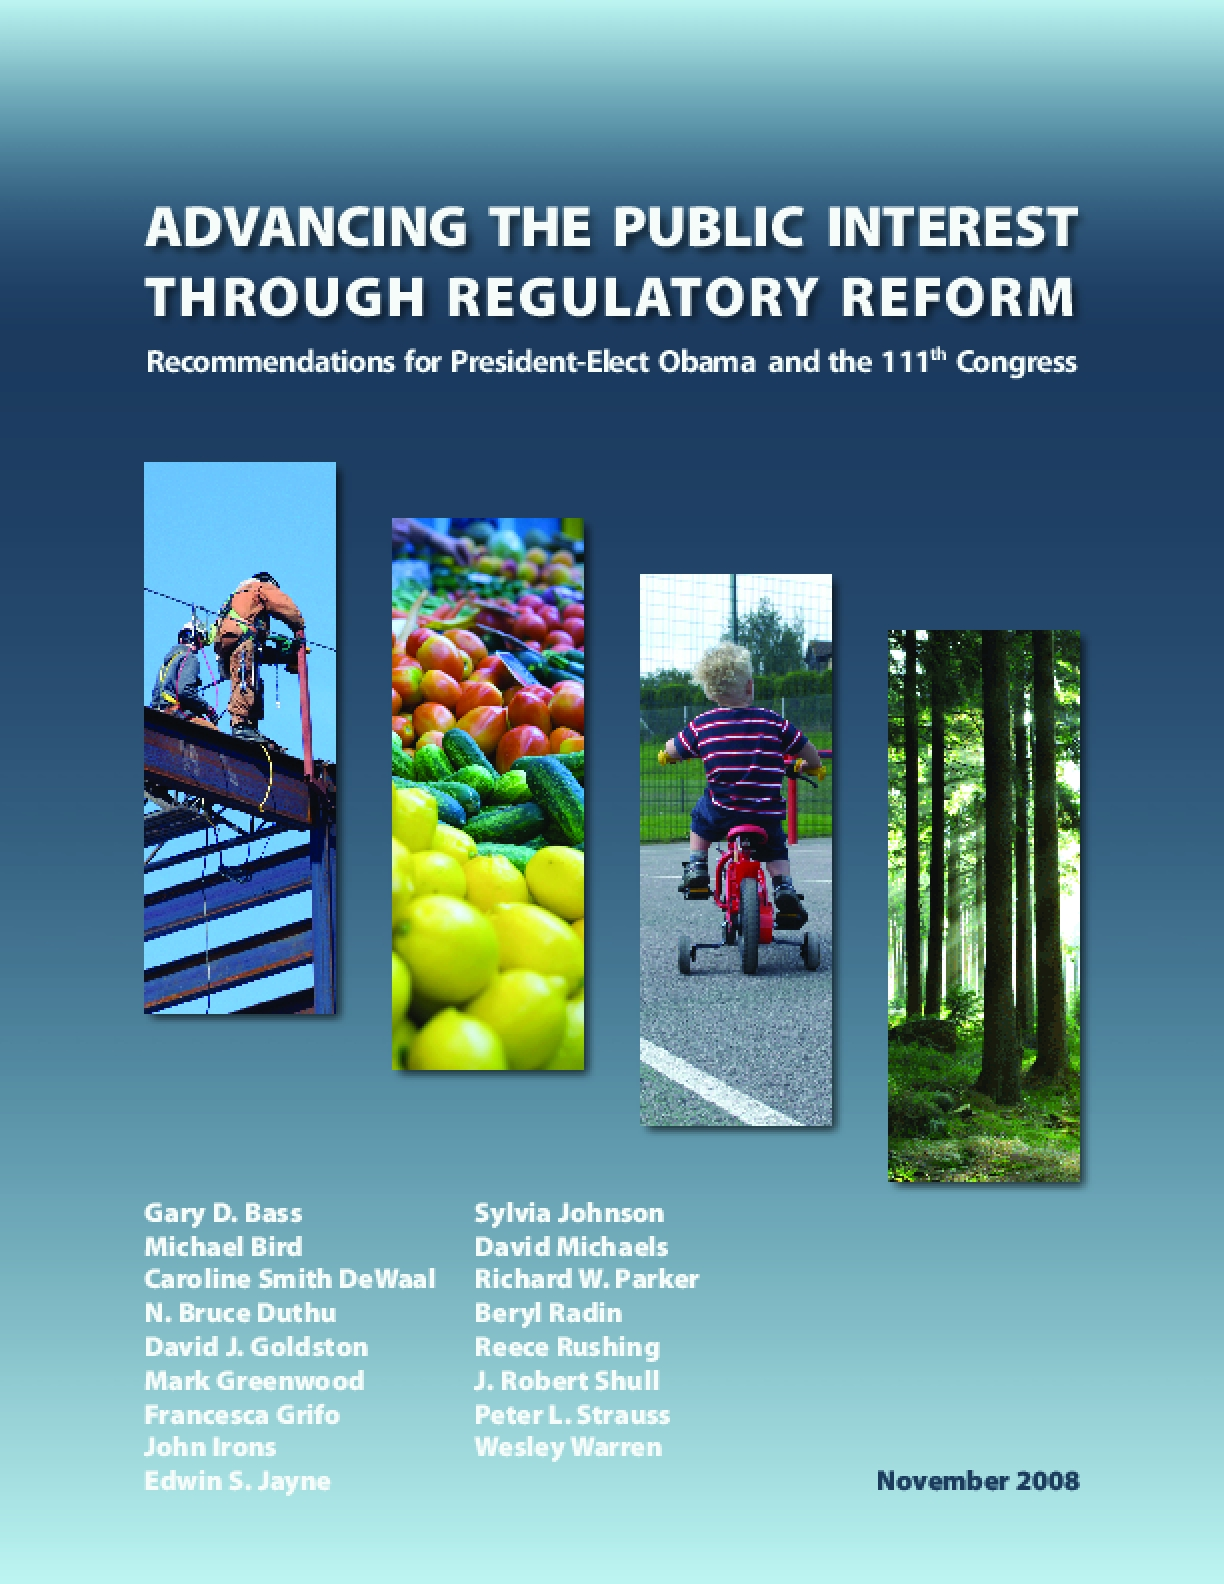 Advancing the Public Interest Through Regulatory Reform